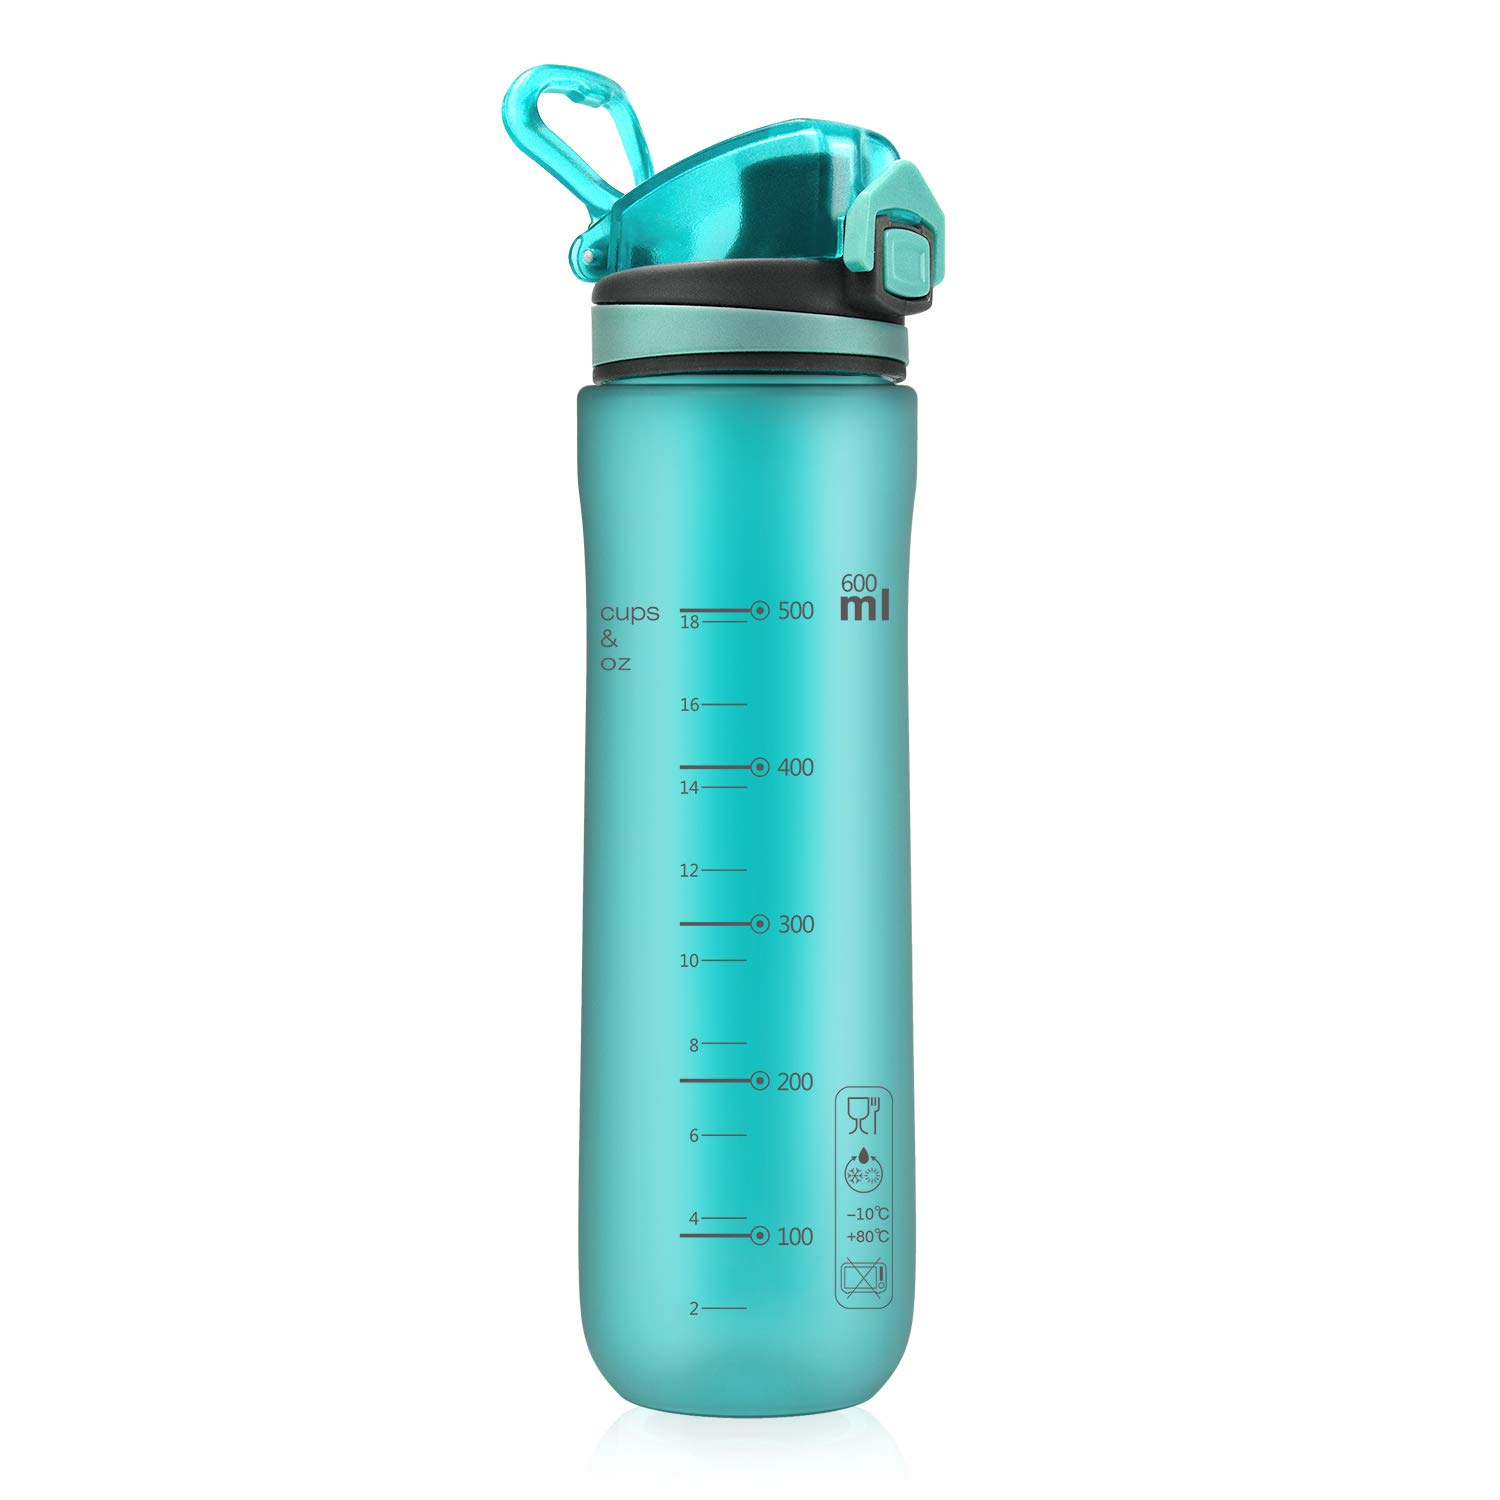 Letsfit Water Bottle, Sports Water Bottler with Flip Top Lid, BPA-Free Tritan Plastic, Leak Proof Dust Proof, 21oz for Outdoors, Cycling, Camping, Yoga, Running